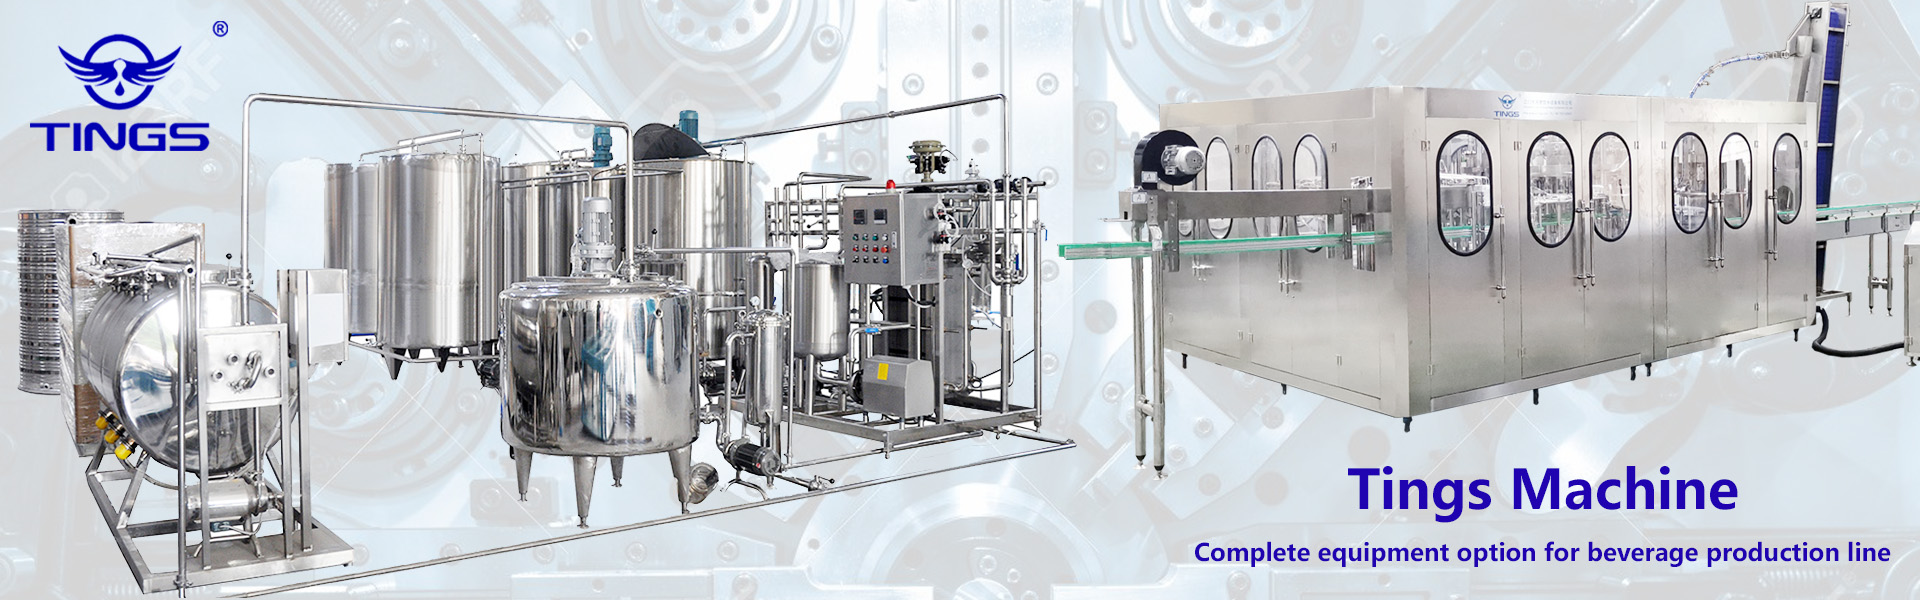 04 TINGS Machine Complete Equipment Option For Beverage Production Line